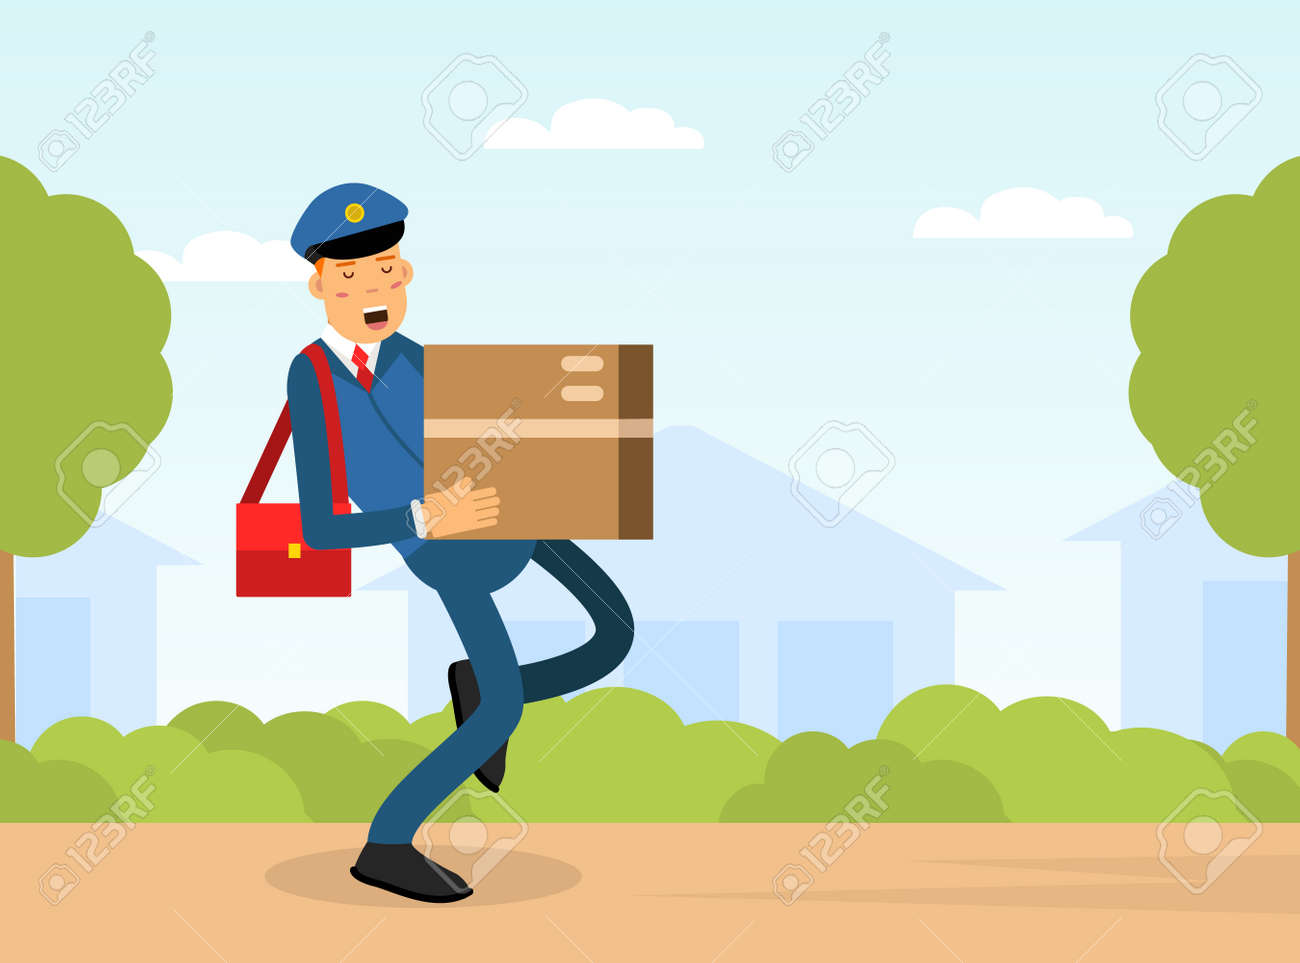 Mail Carrier or Mailman as Employee of Postal Service Delivering Mail and Parcel to Residence Vector Illustration - 169216393